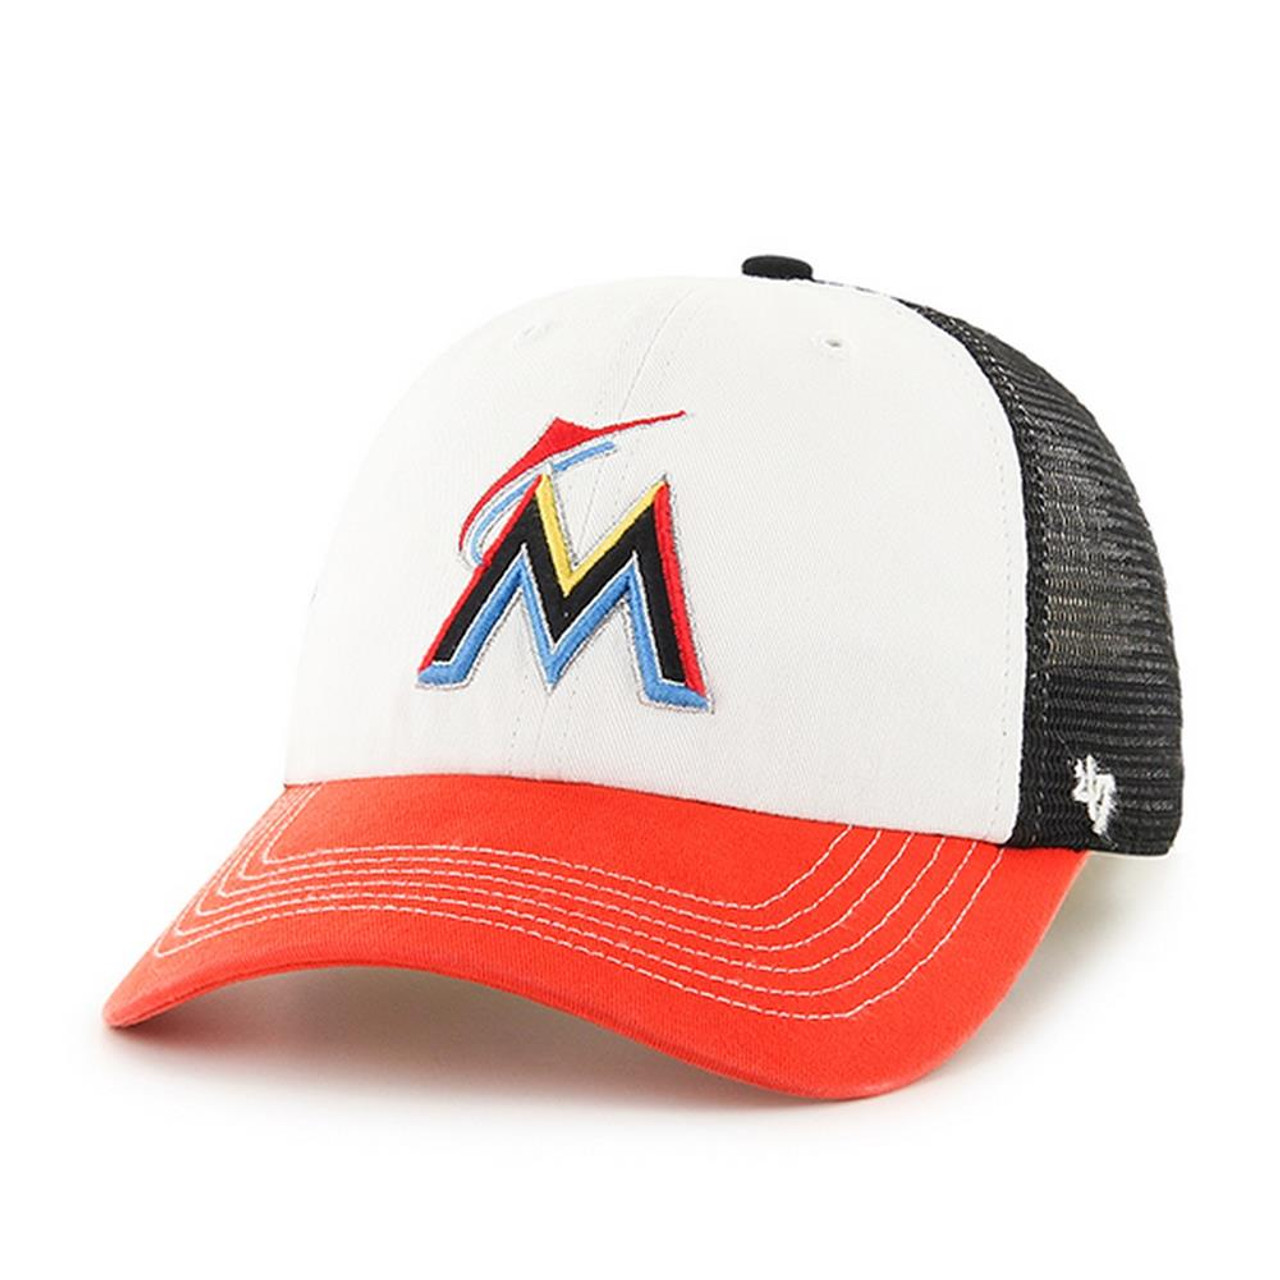 Men's 47 Brand Mckinley Miami Marlin Fitted Hat